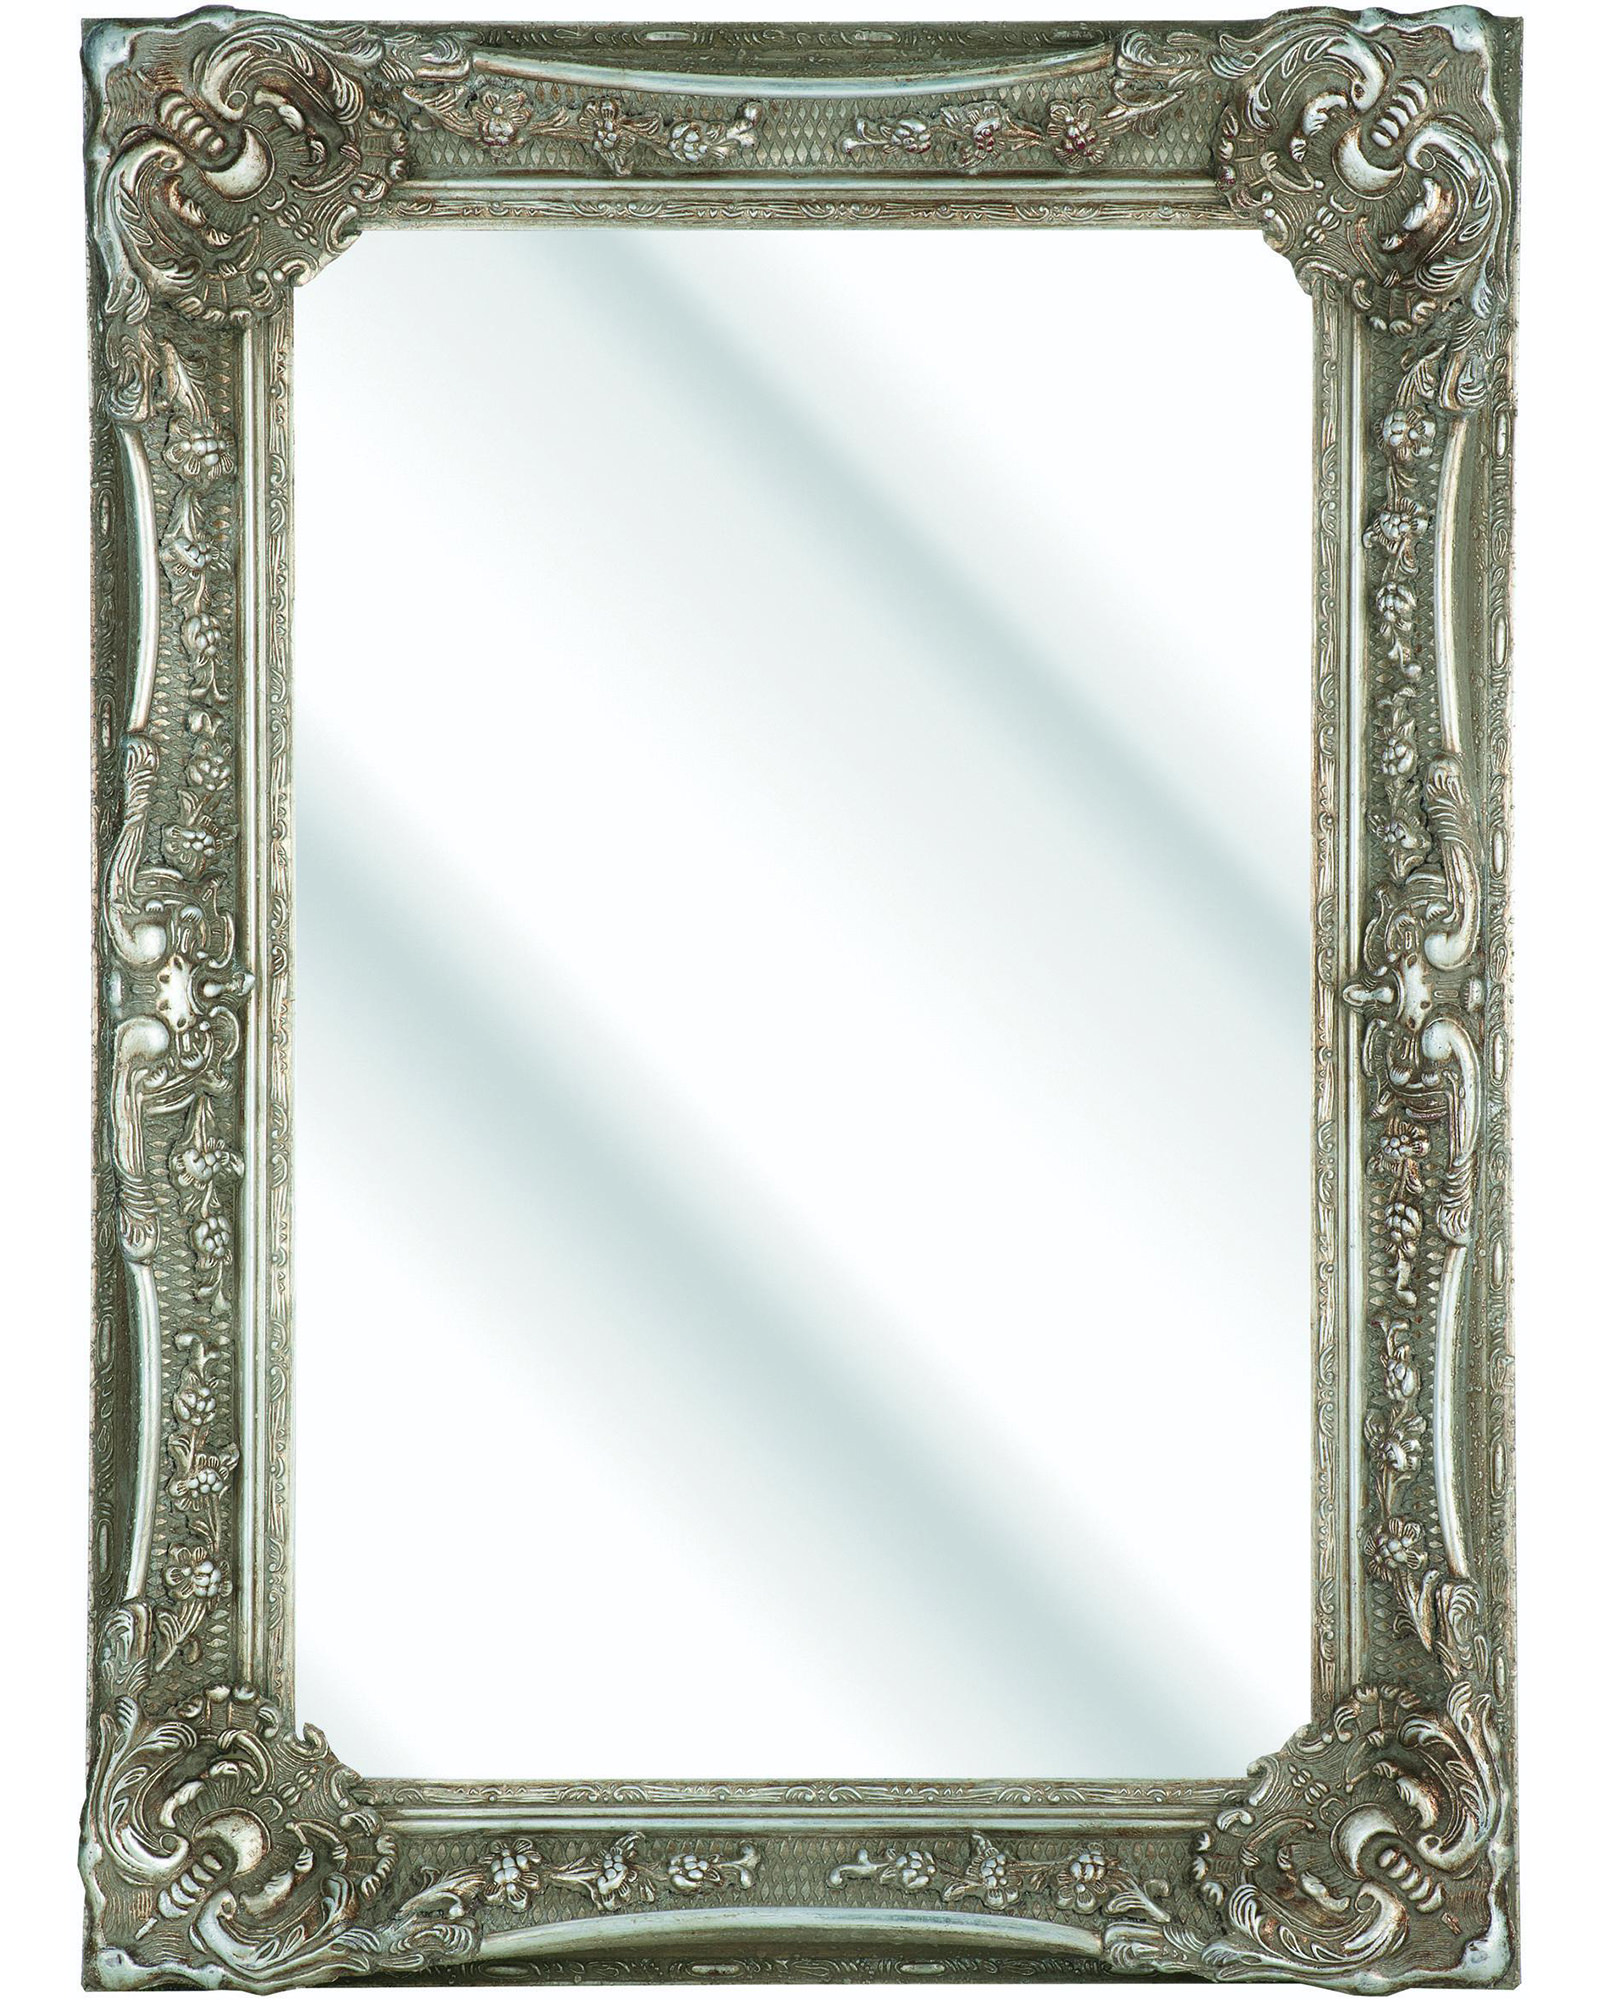 Heritage bayswater vintage silver wooden framed mirror 790x1090mm for Silver framed bathroom mirrors